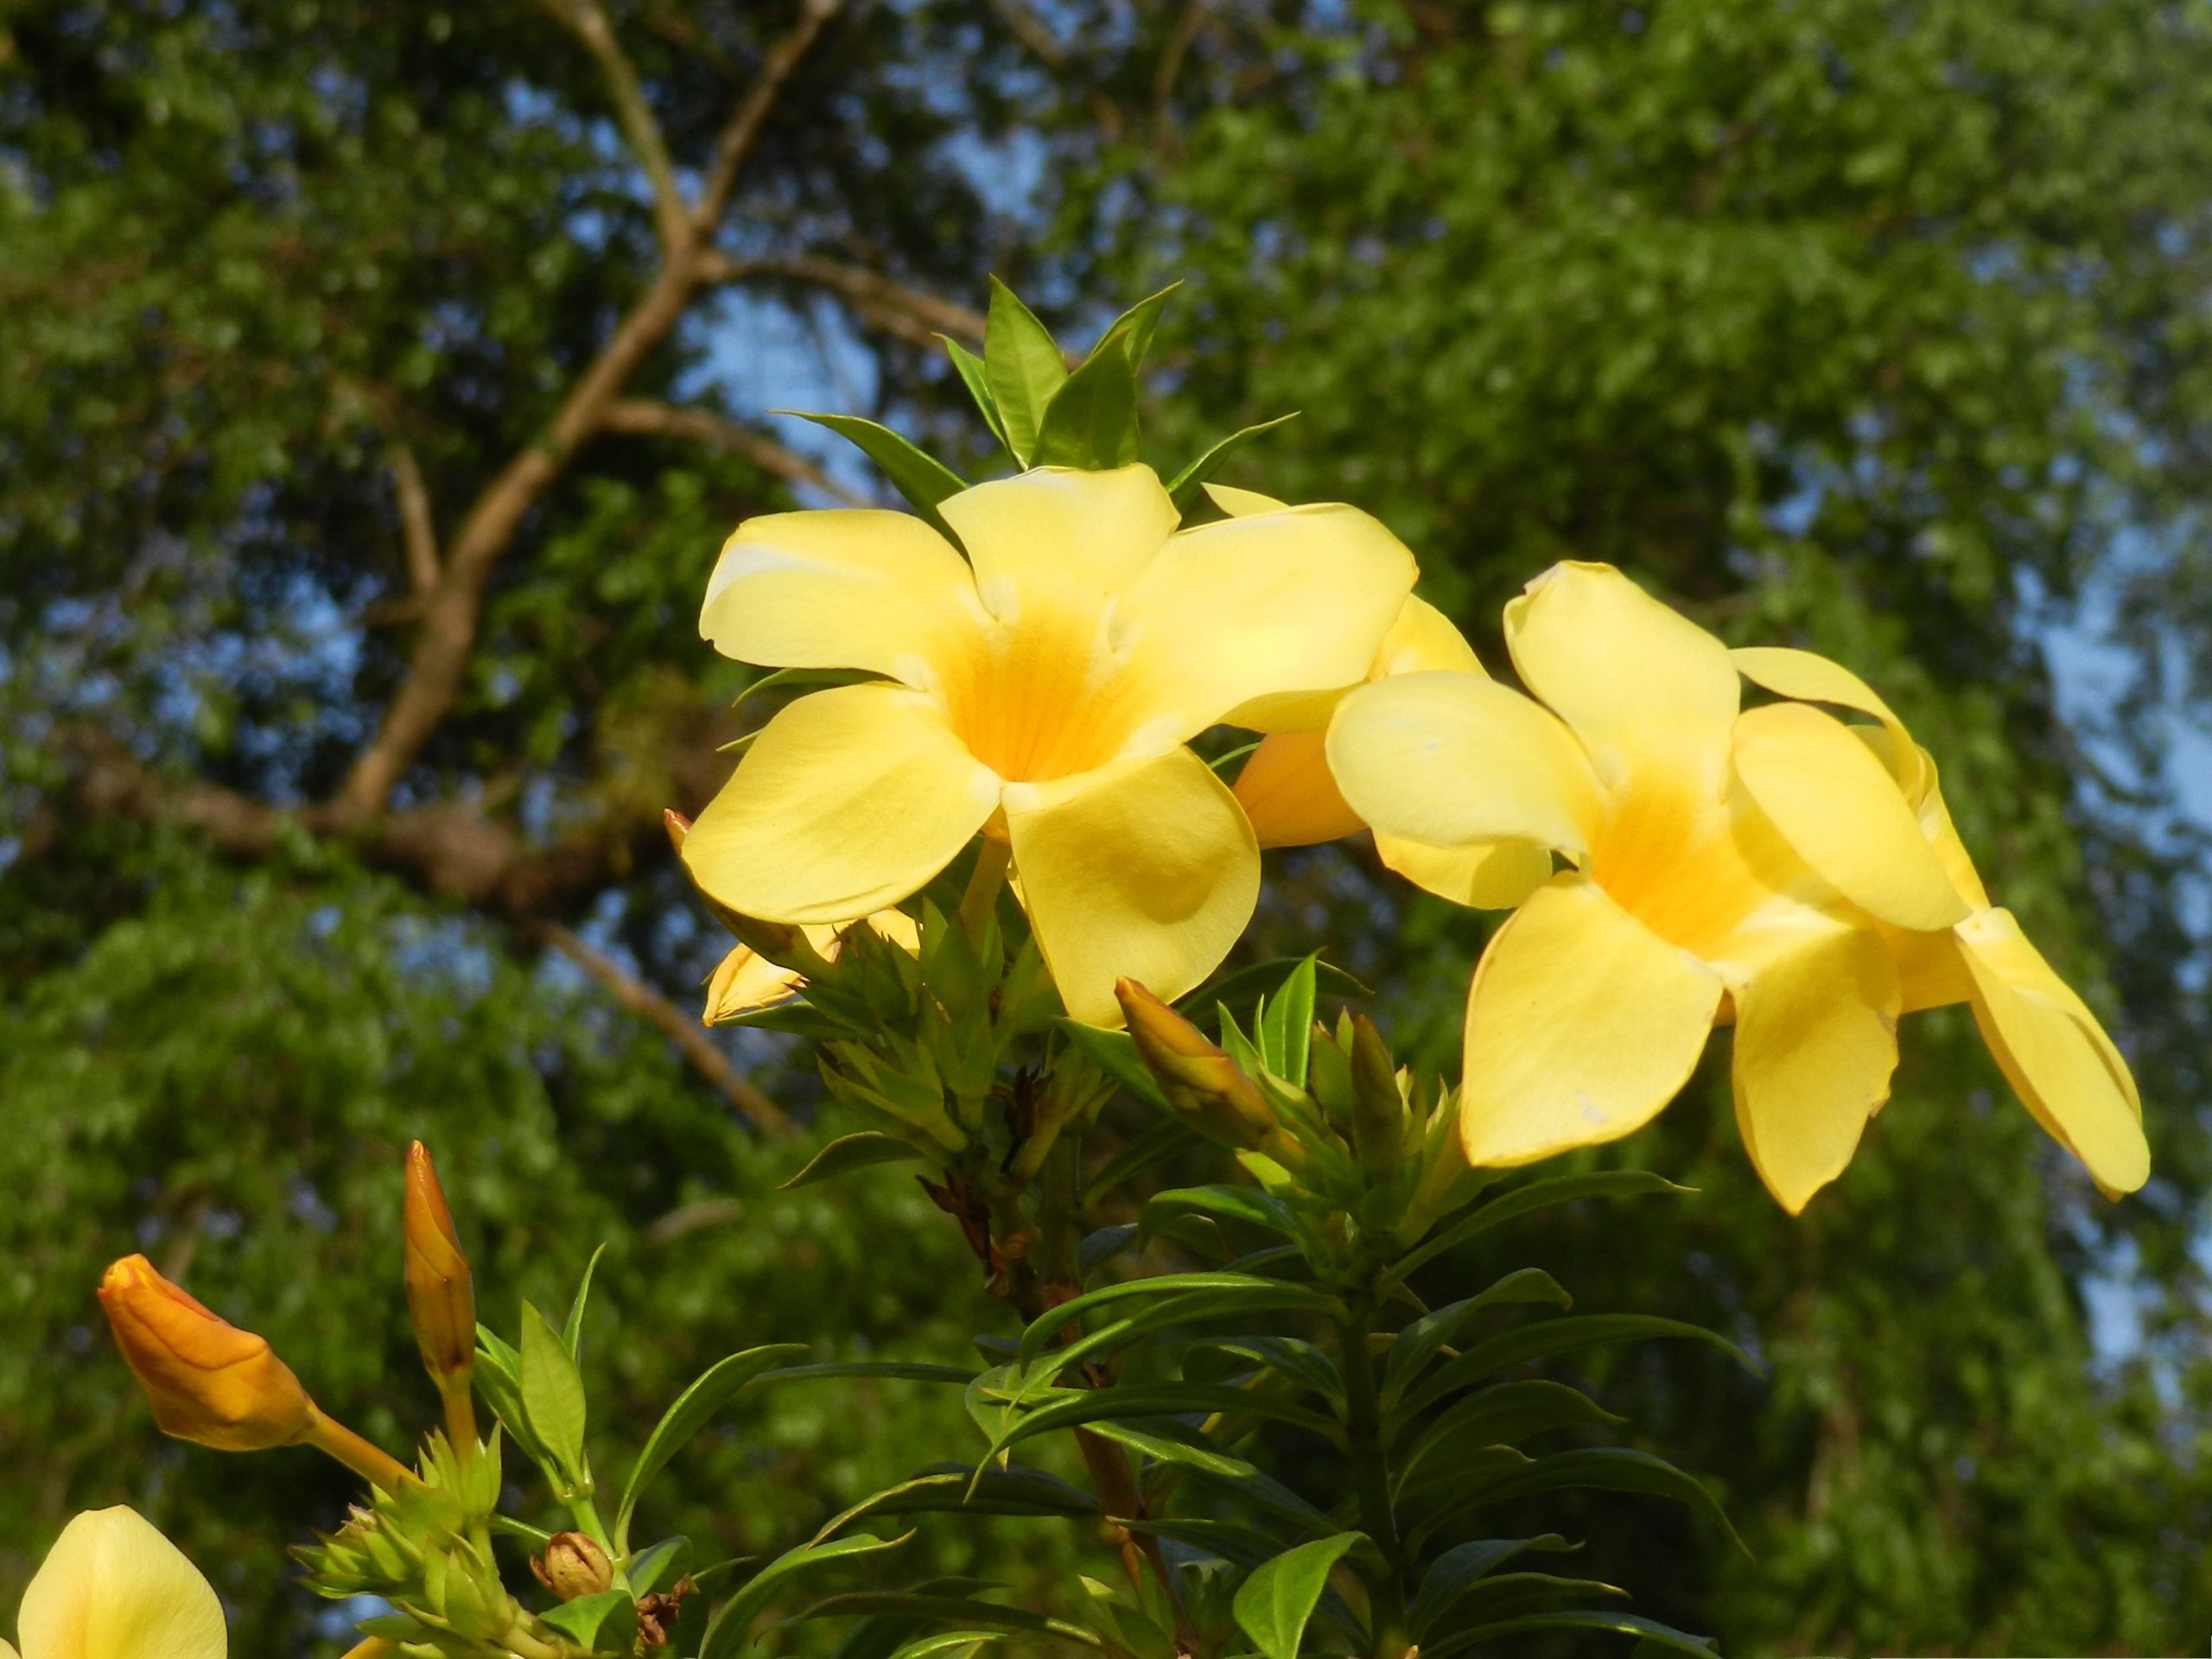 click to free download the wallpaper--Yellow Flowers Image, Tiny and Beautiful Flowers Around Tall Green Tree, Both Impressive 2560X1920 free wallpaper download